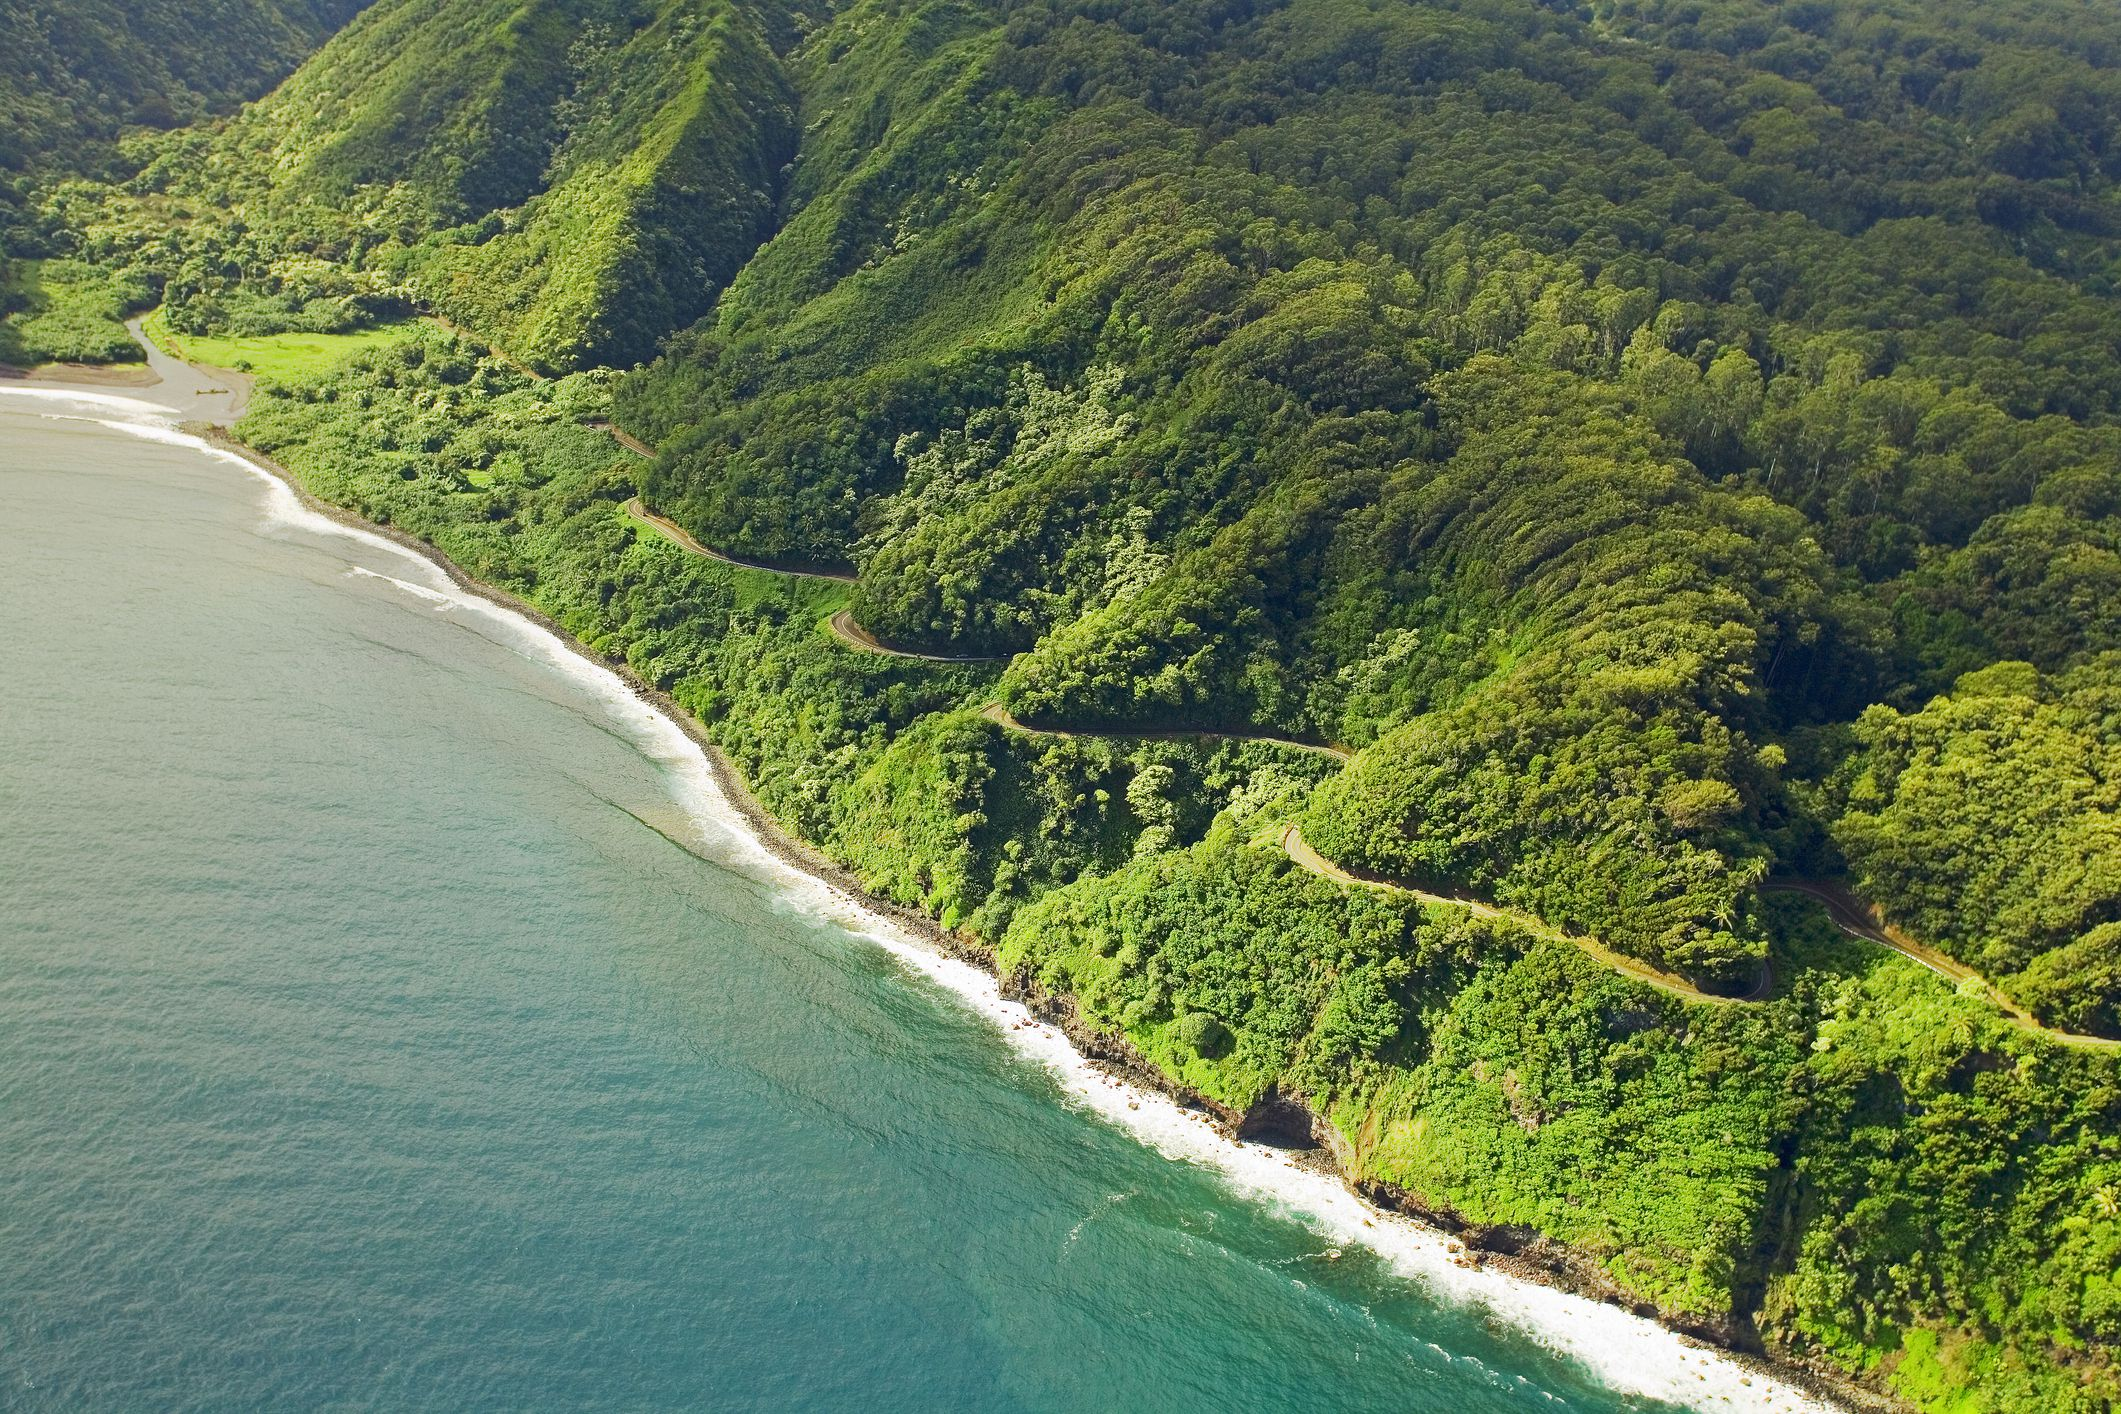 The Complete Guide to Driving Maui's Road to Hana